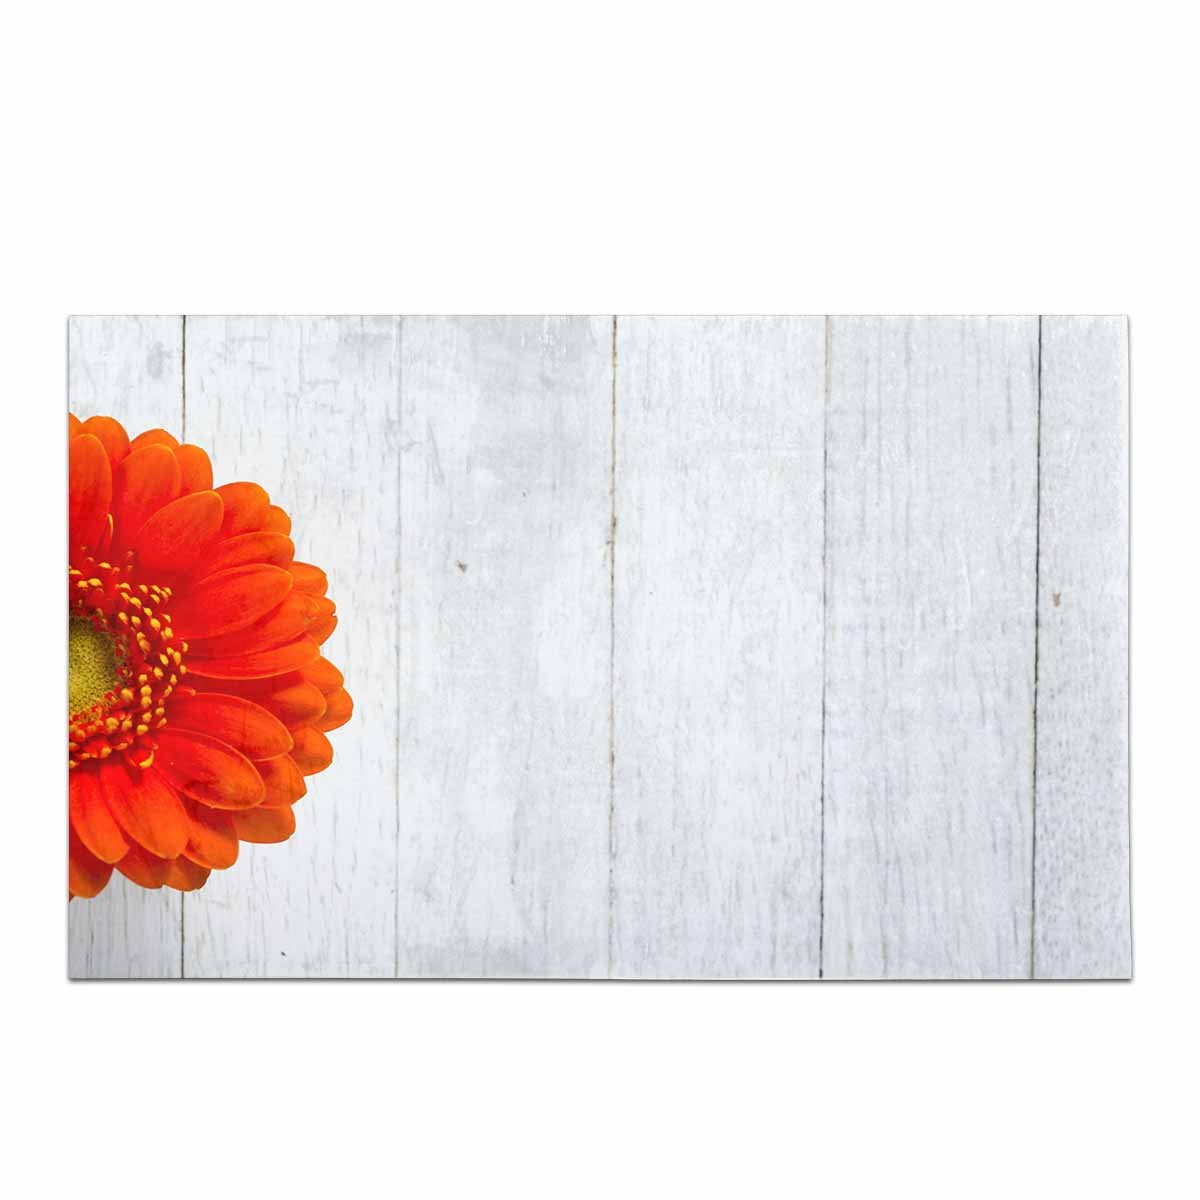 InterestPrint Gerbera Daisy Flower on White Wood Table Decor Non-Slip Bath Rug Absorbent Shower Mat Bath Mats for Bathroom Tub Large Size 20 x 32 Inches by InterestPrint (Image #1)